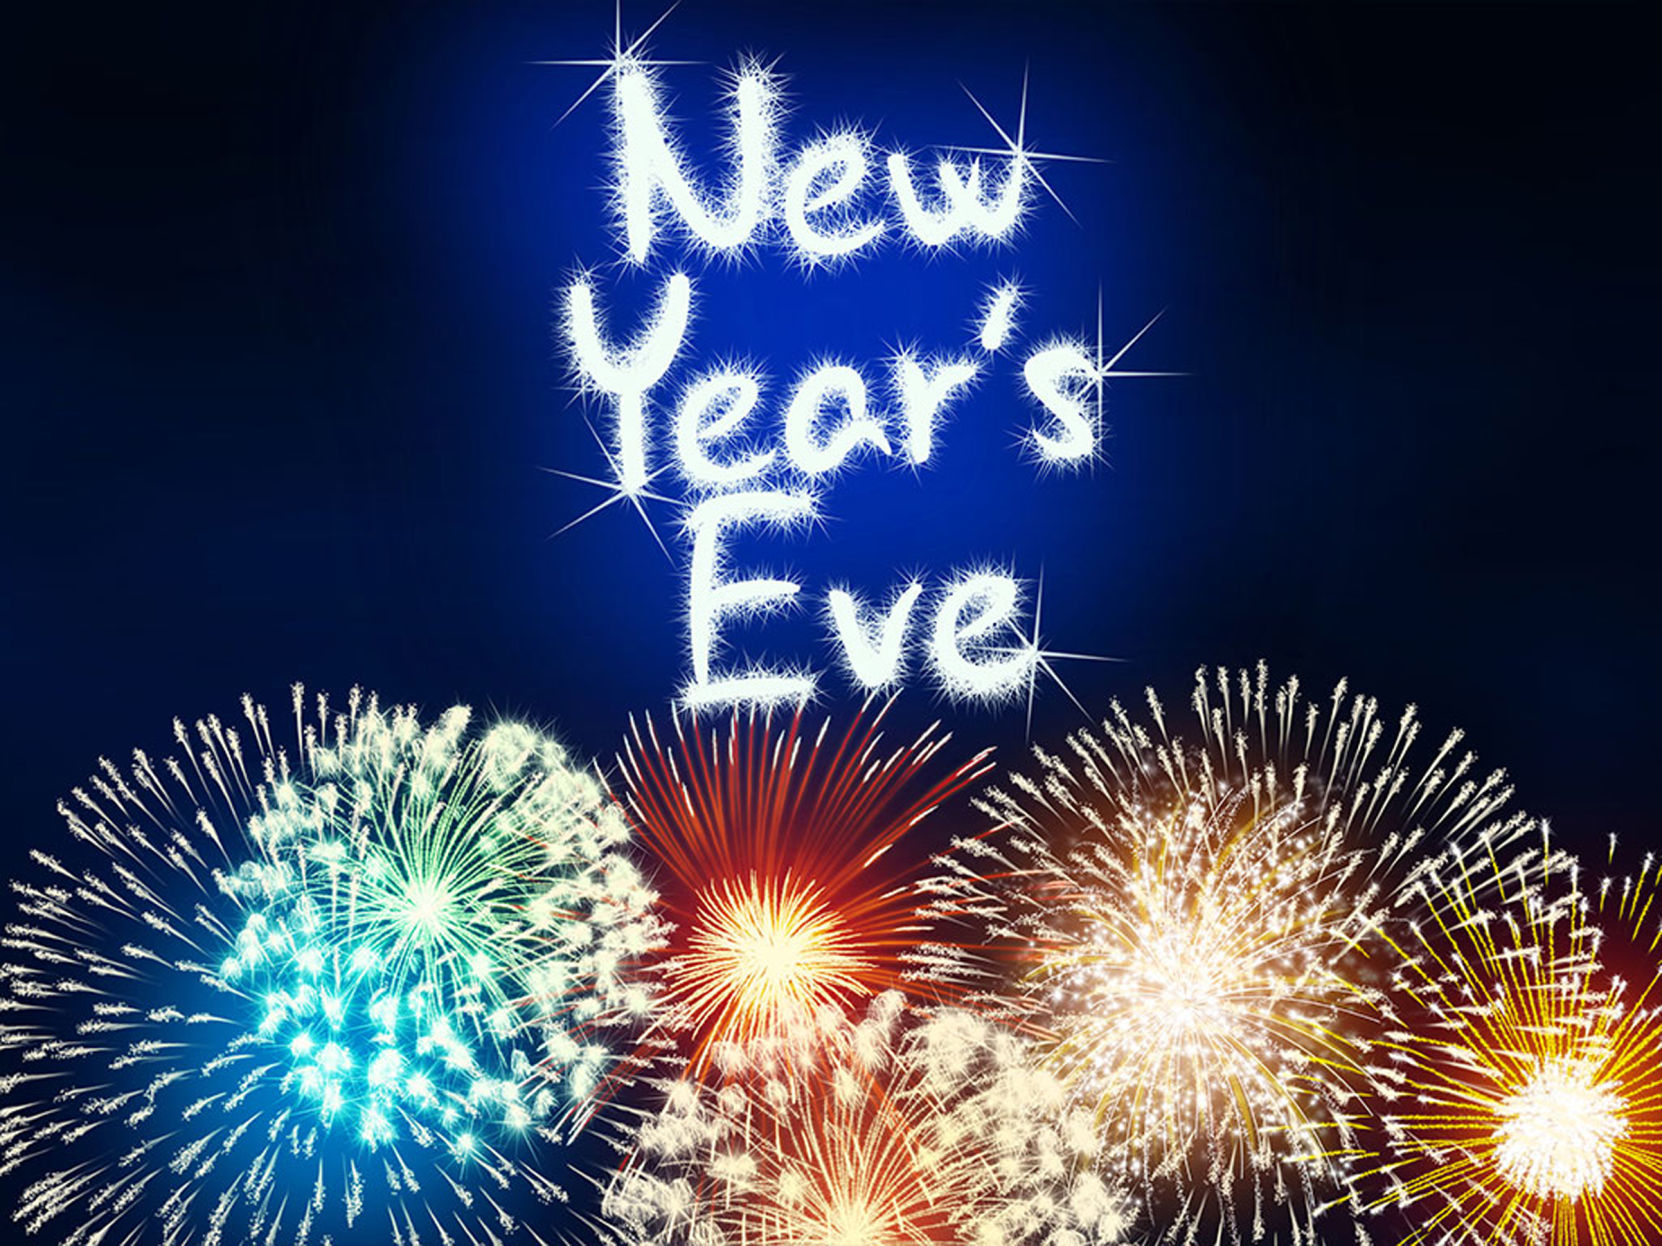 New Year S Eve Celebrations In The Kenosha Area Events